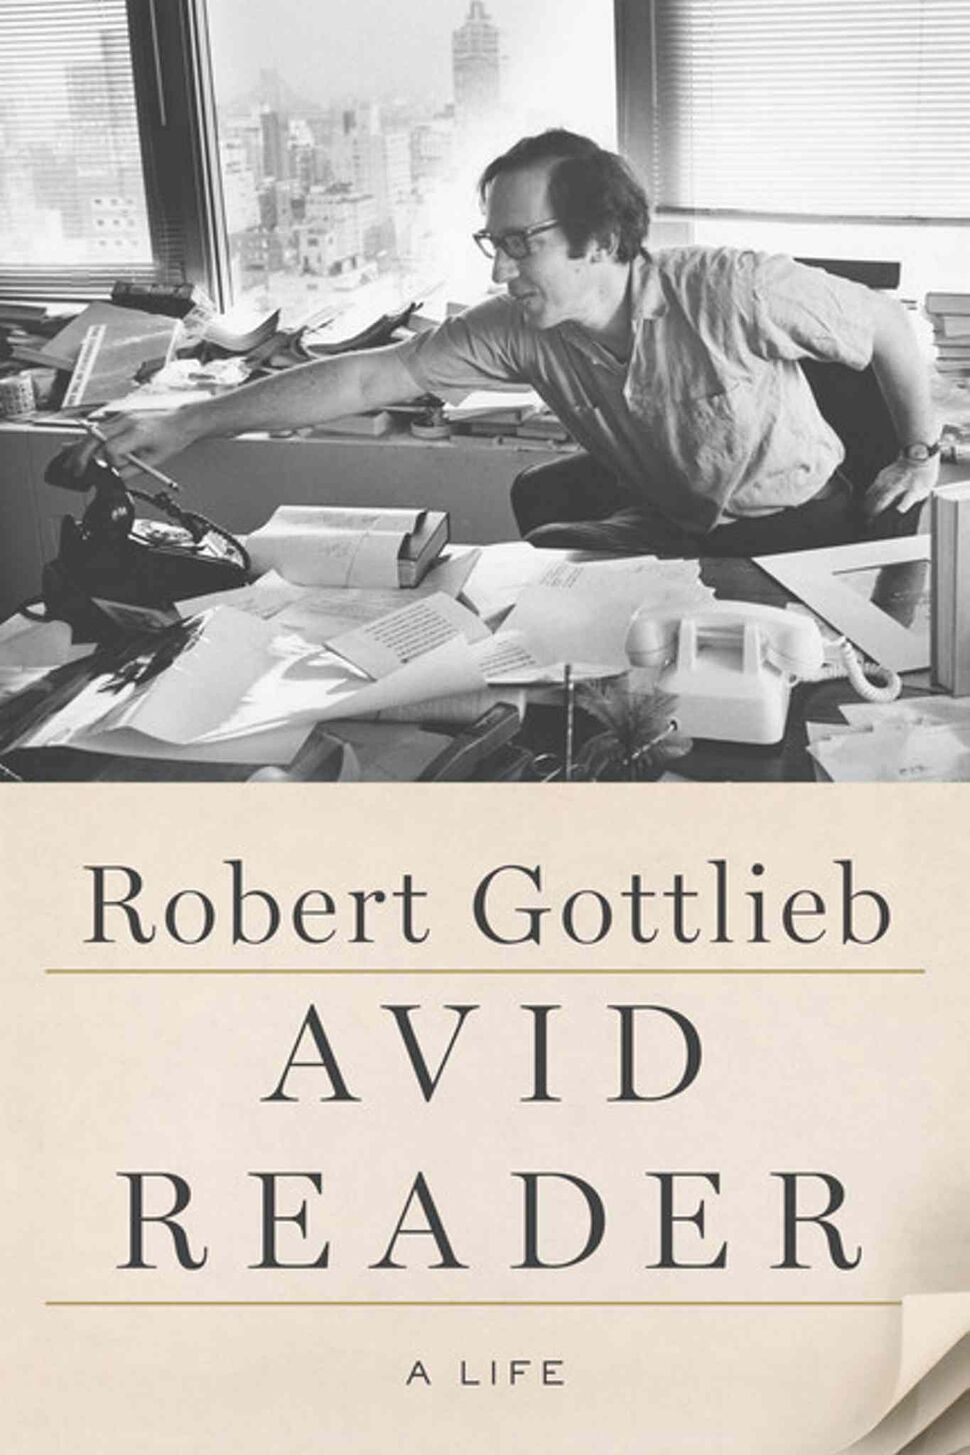 <h3>Avid Reader: A Life</h3> <br/> By Robert Gottlieb <br/> <strong>This exuberant memoir by the great Knopf U.S. editor (and, briefly, New Yorker magazine editor) is crack cocaine for New York literary-world groupies. Gottlieb, 85 and going strong, displays a talent for gossip, friendship, self-examination and, above all, hard work. An absolute joy.</strong> <br/> — Morley Walker